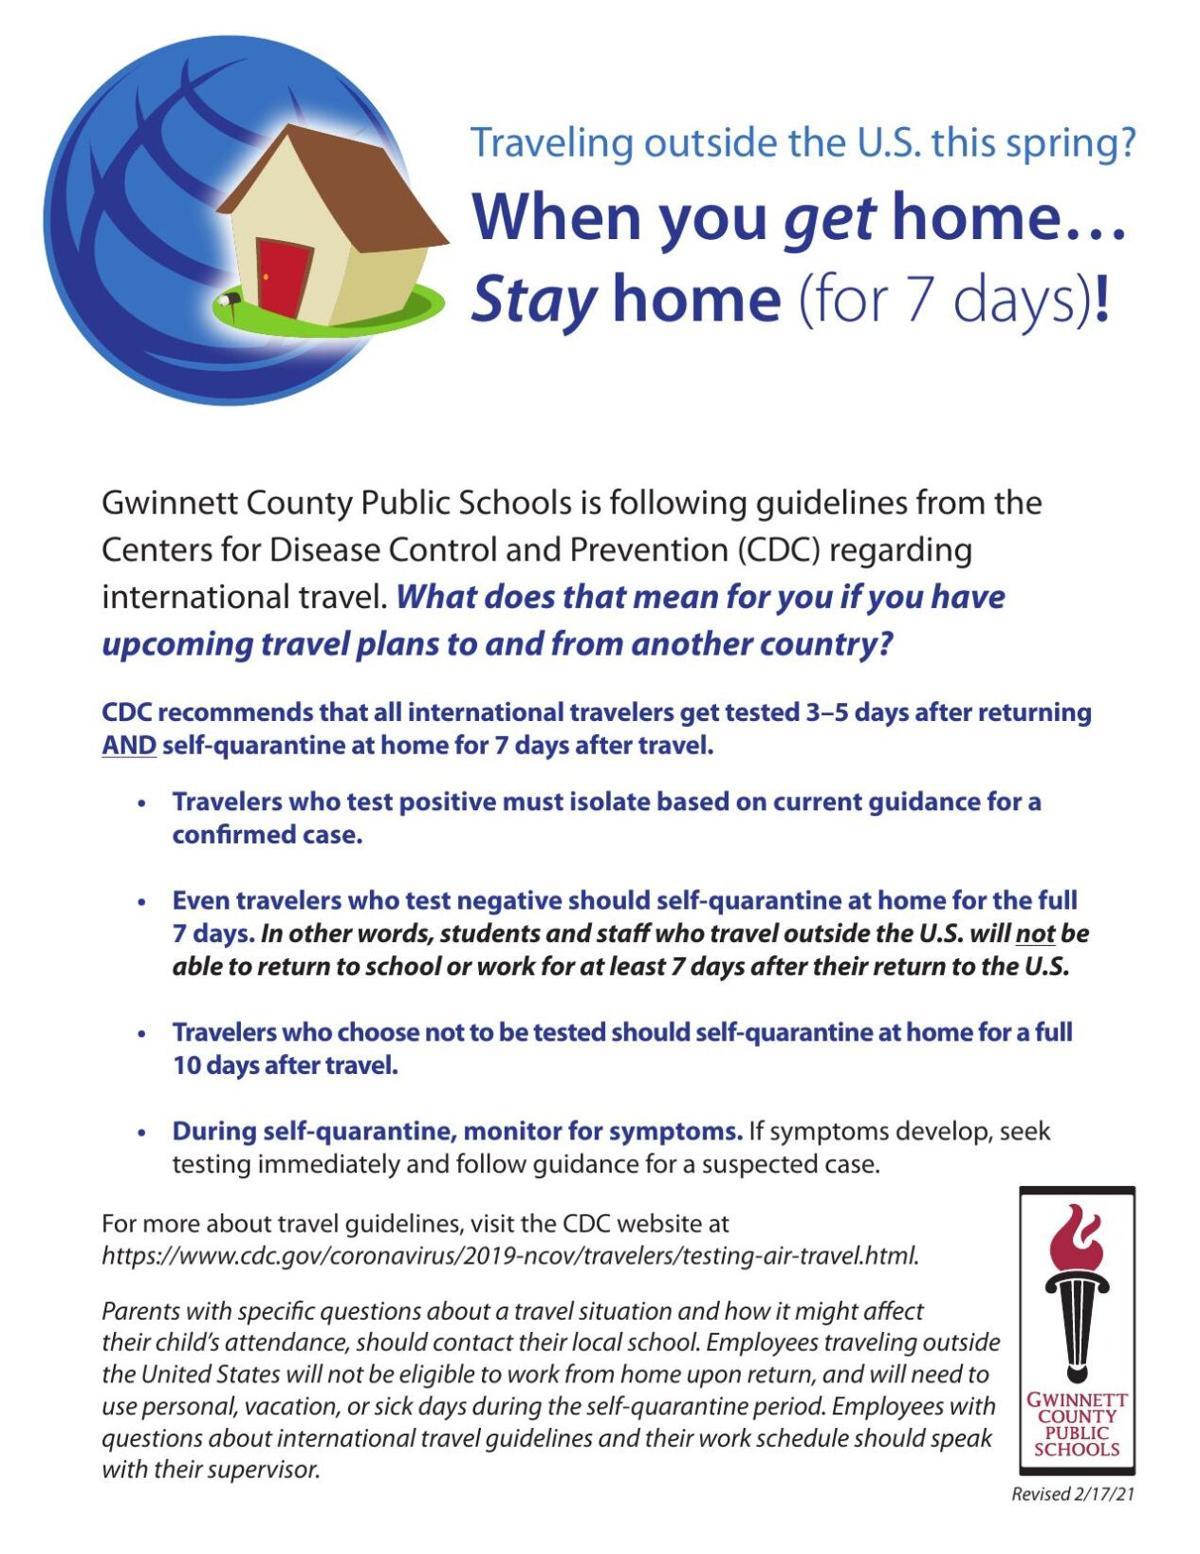 GCPS flyer outlining quarantine rules for internationsl travelers